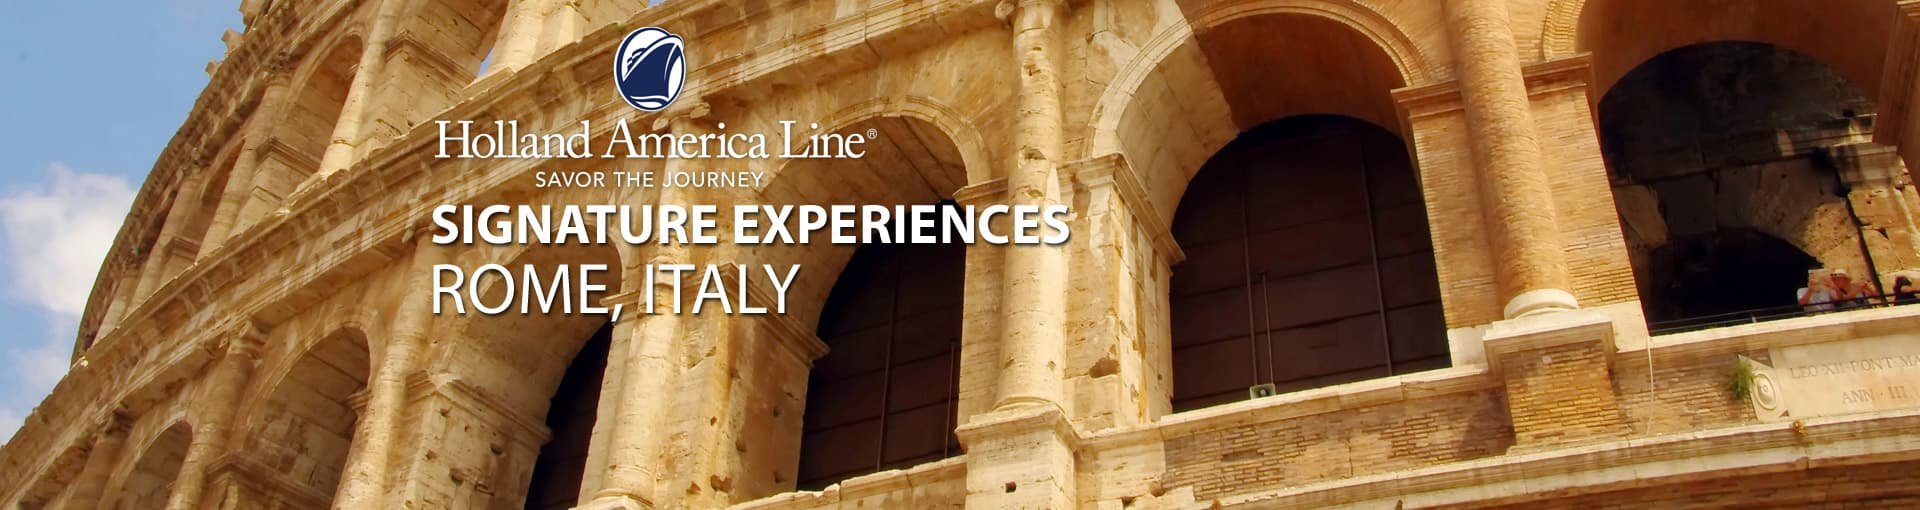 Holland America Signature Experiences - Rome, Italy